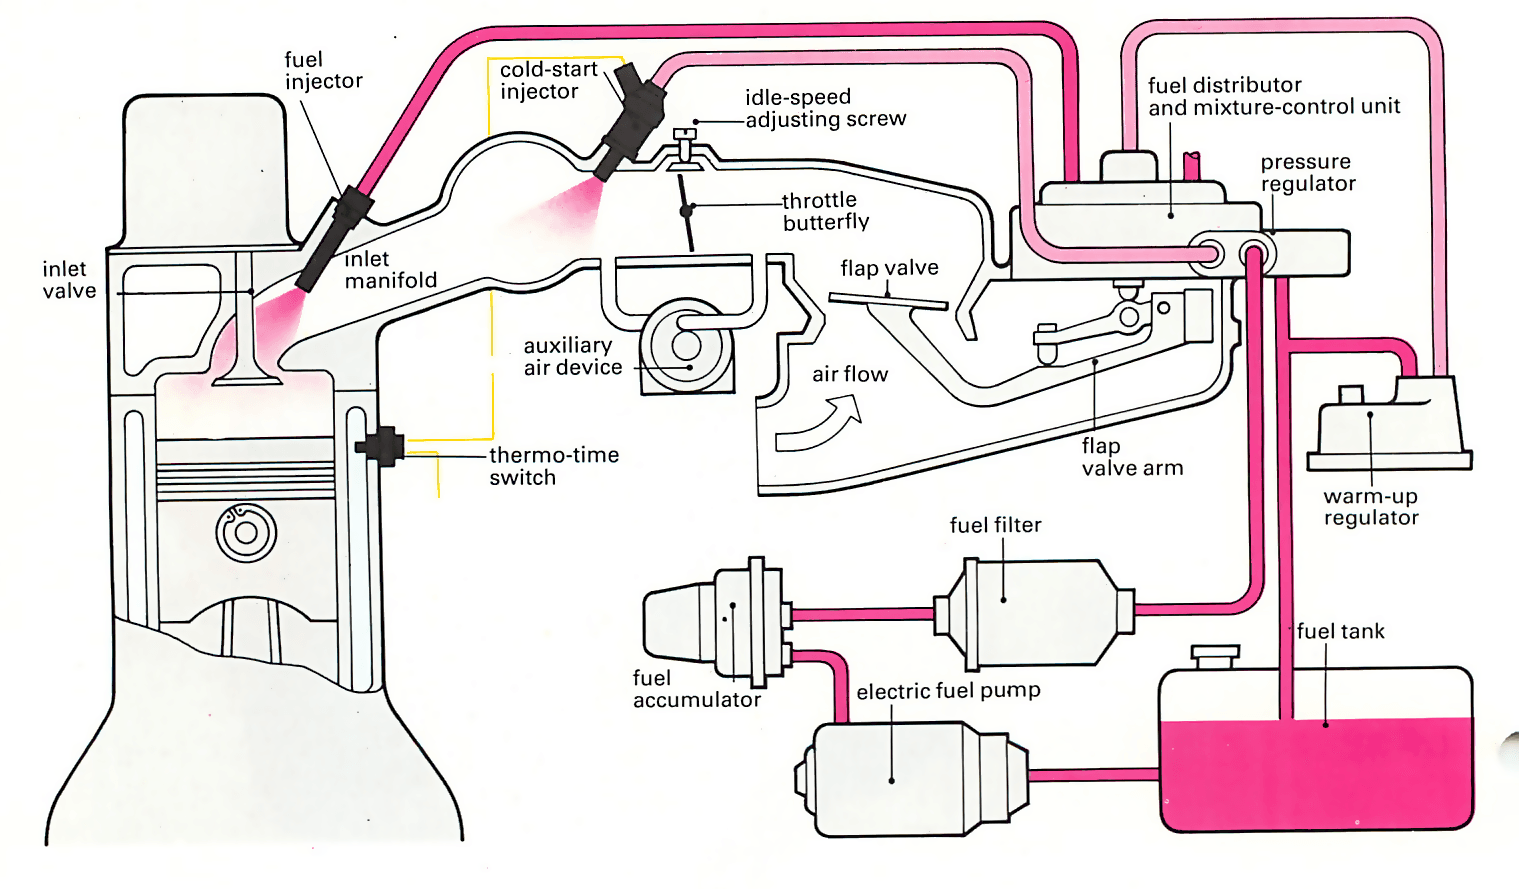 hight resolution of fuel injector engine diagram